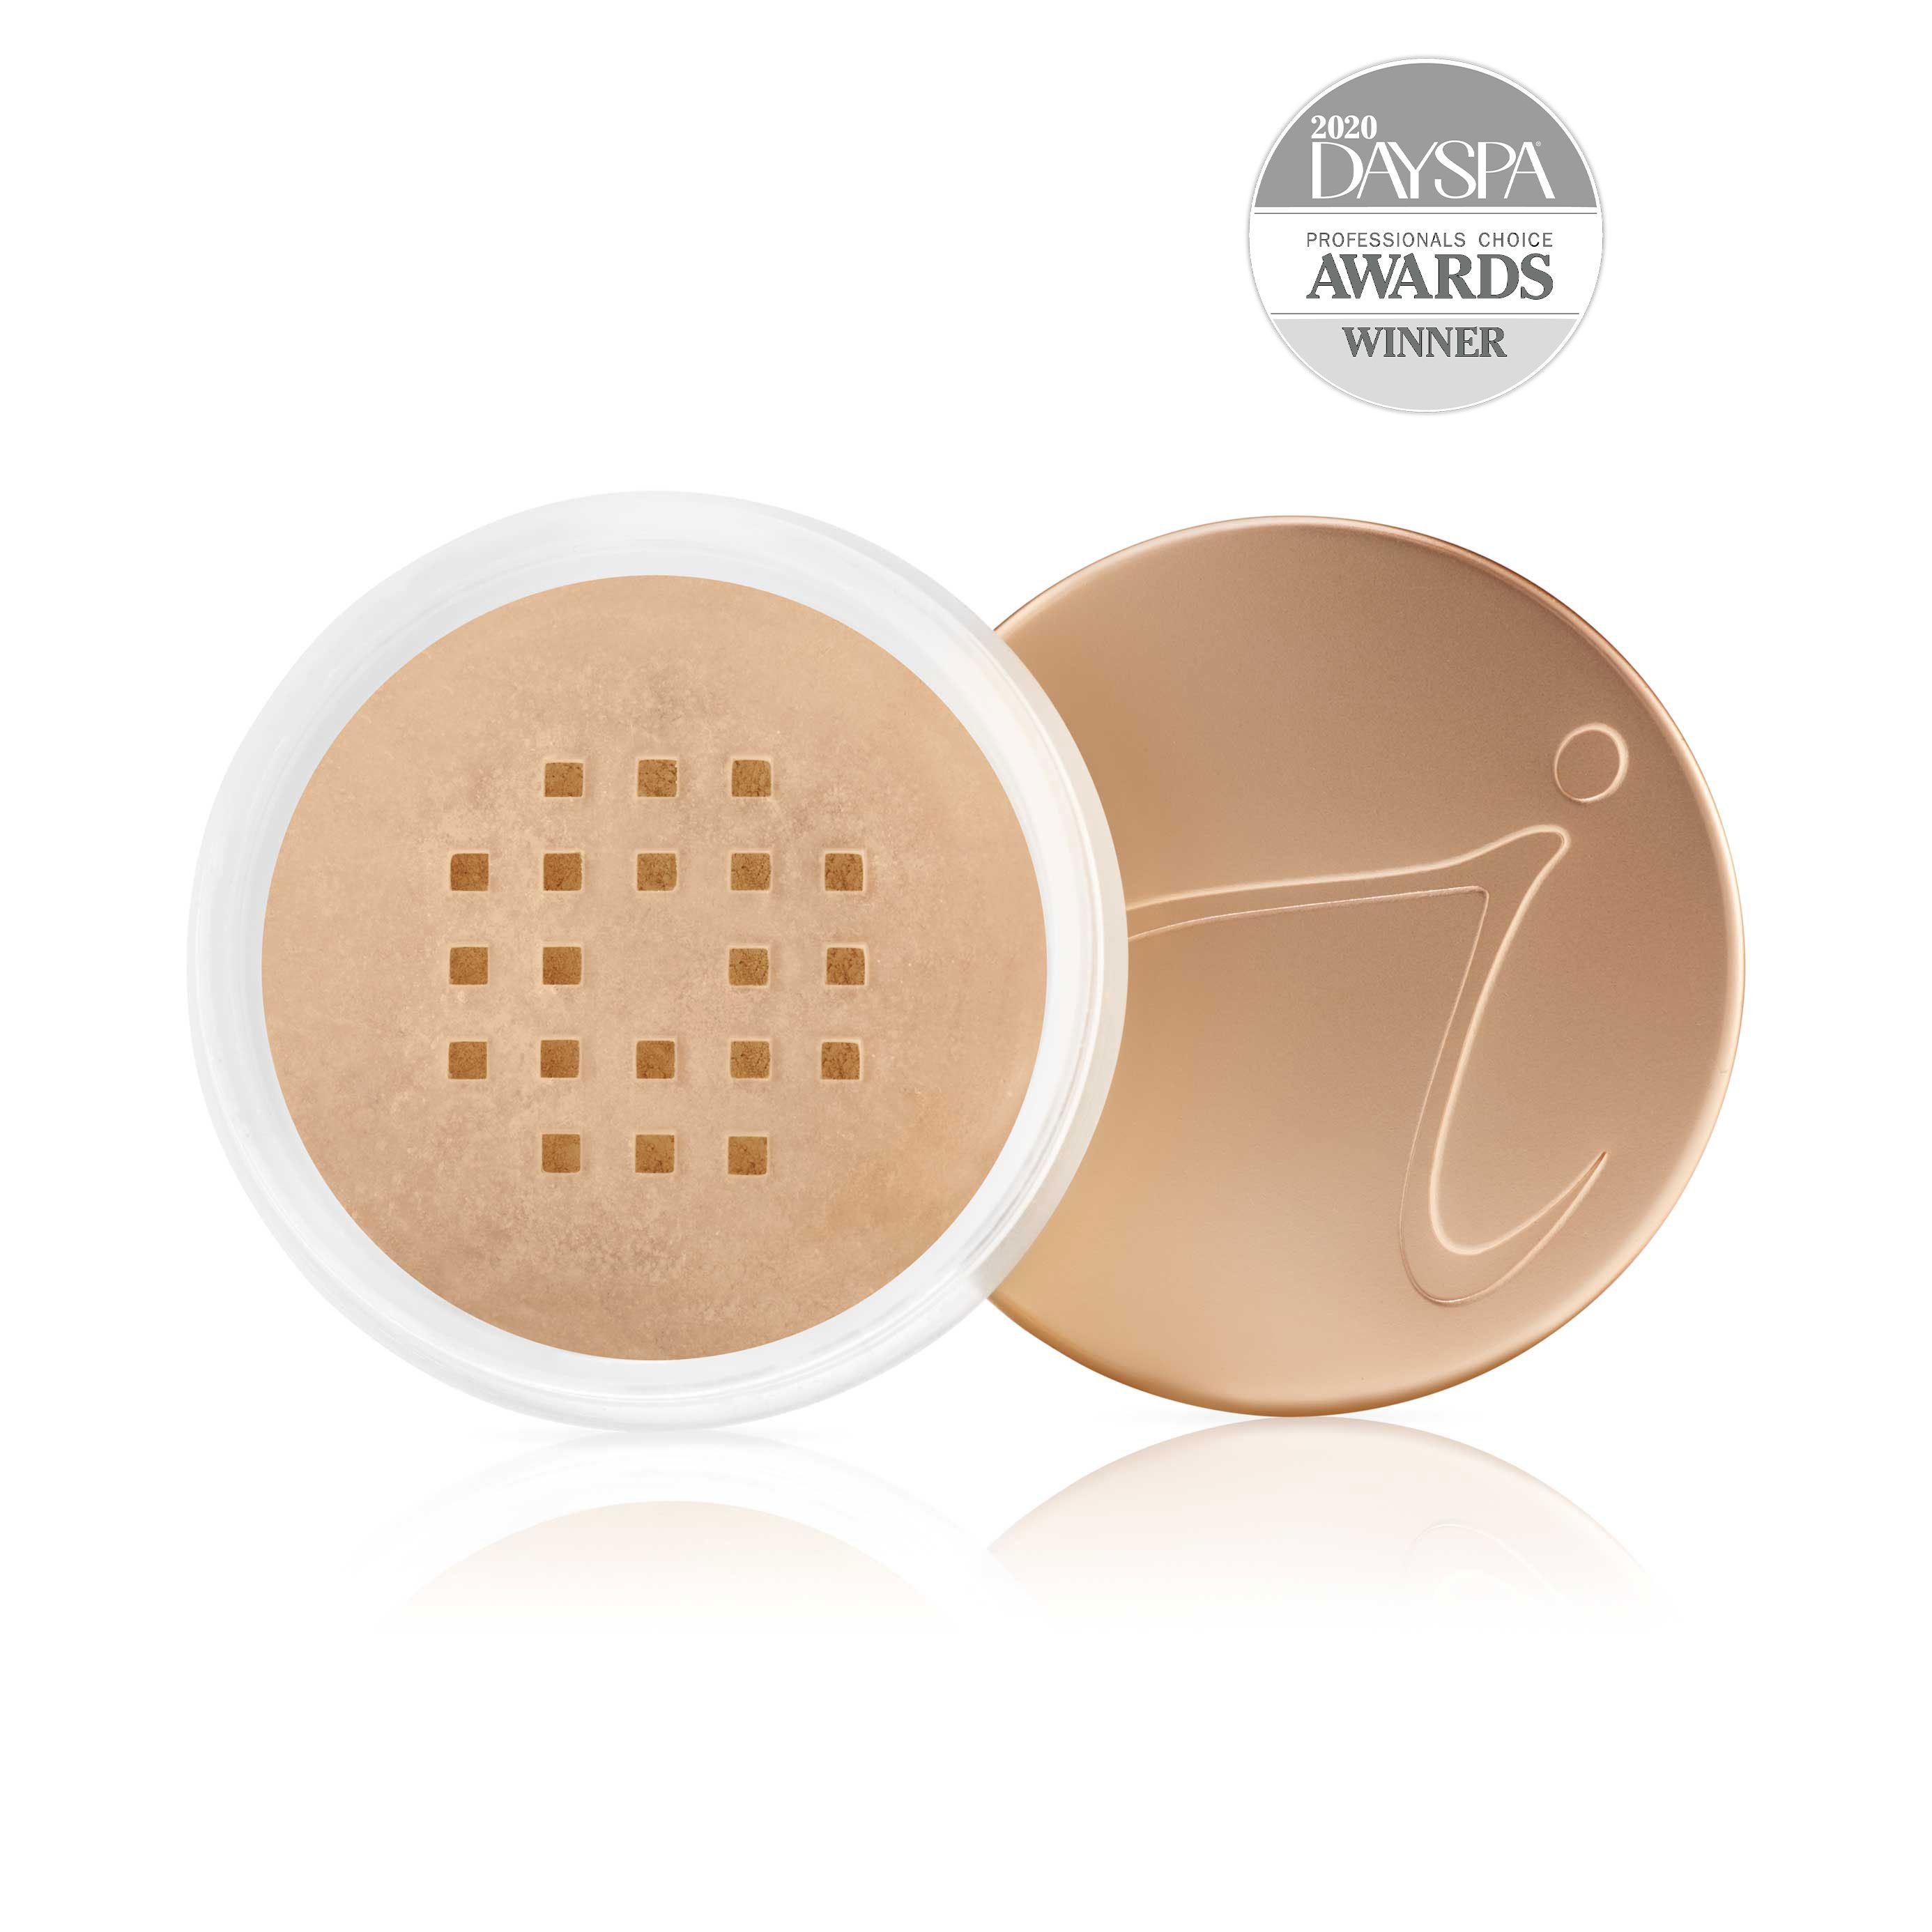 Loose mineral powder spf 20 foundation amazing base jane iredale amazing base loose mineral powder nvjuhfo Choice Image